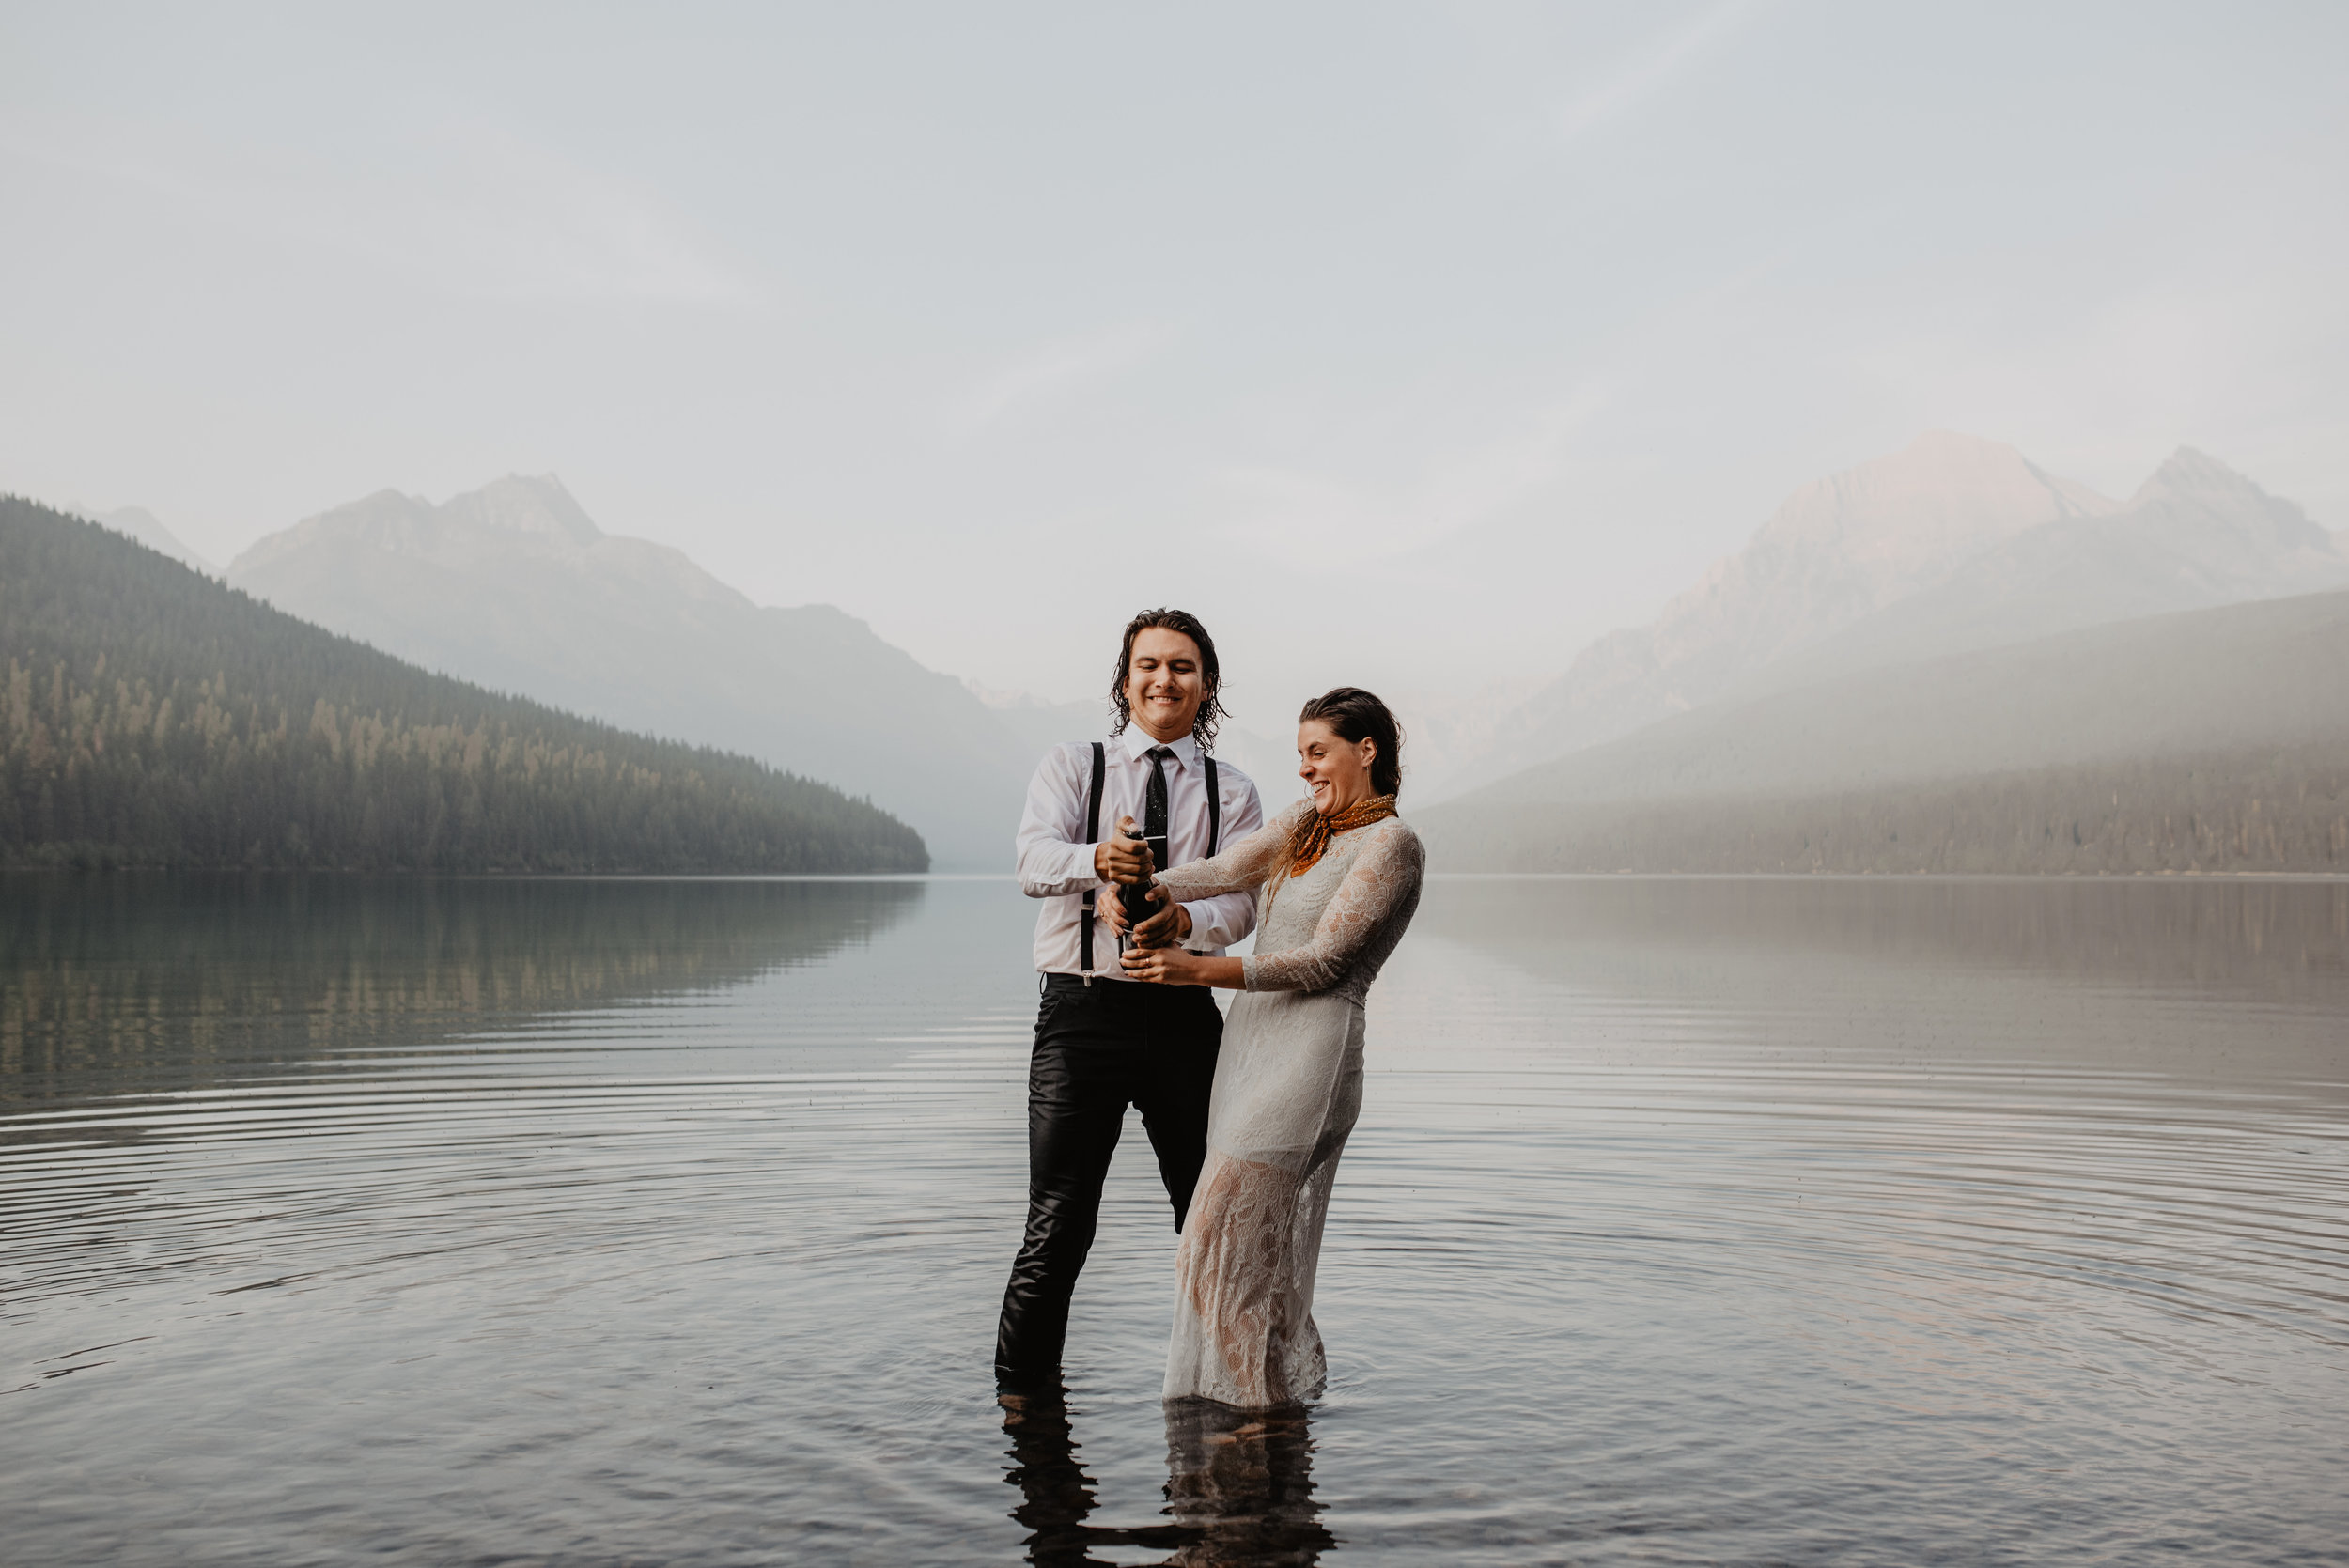 Outdoor elopement portrait of engaged couple poping champagne while in water at Glacier National Park MT